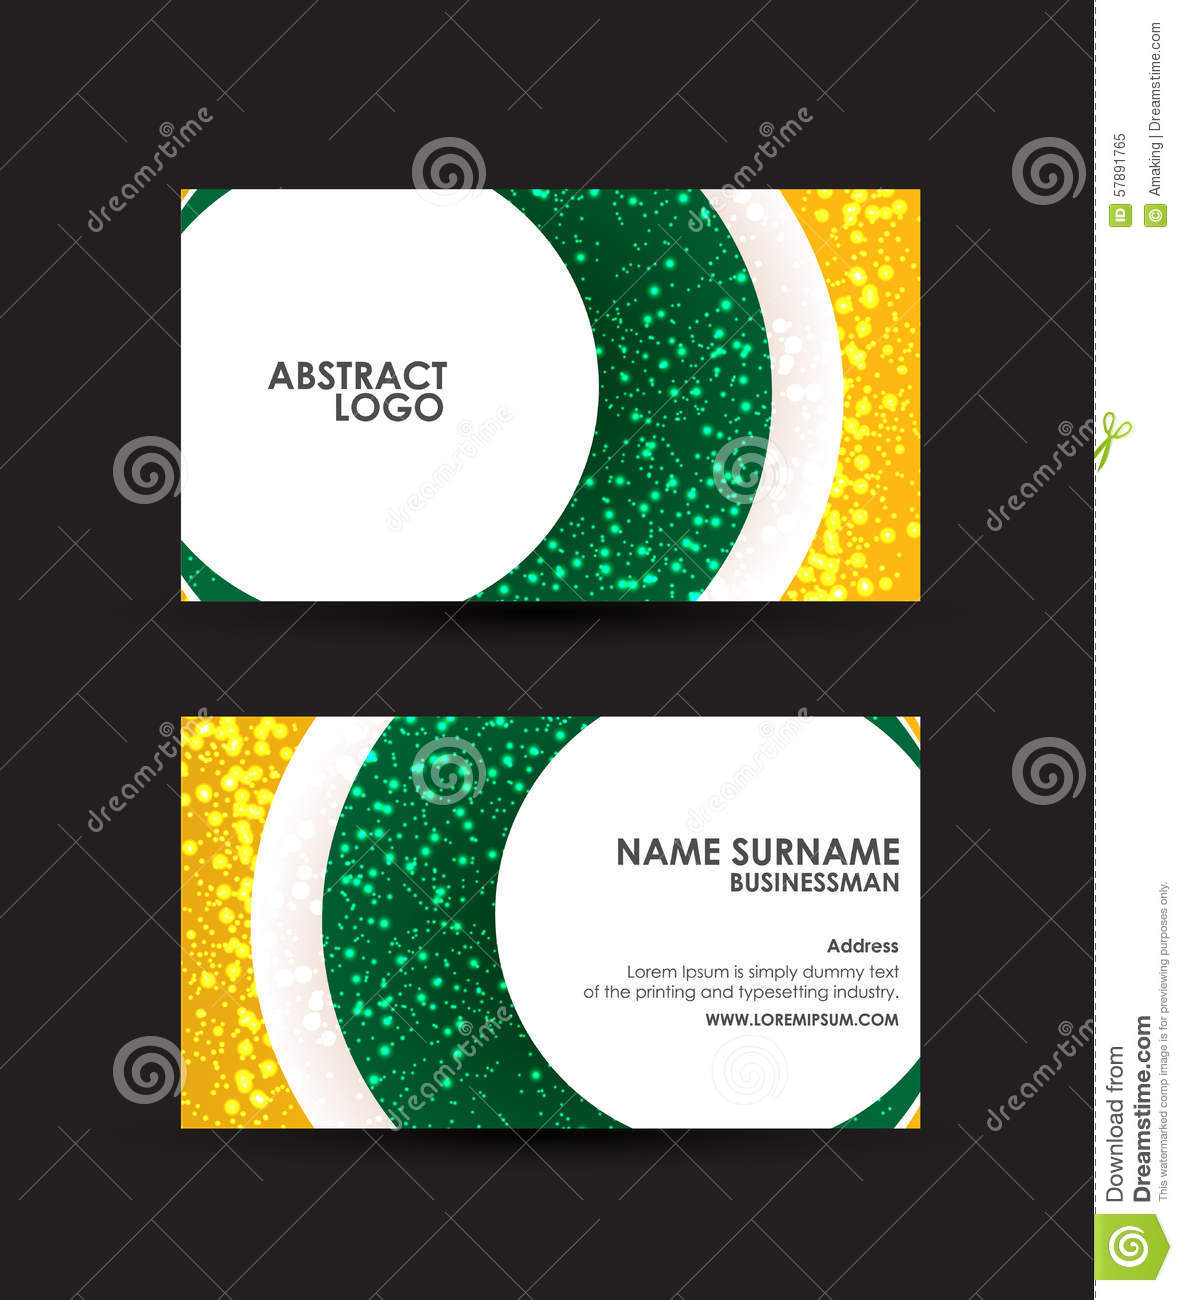 download abstract circles business card vector design template stock vector illustration of background - Circle Business Card Template